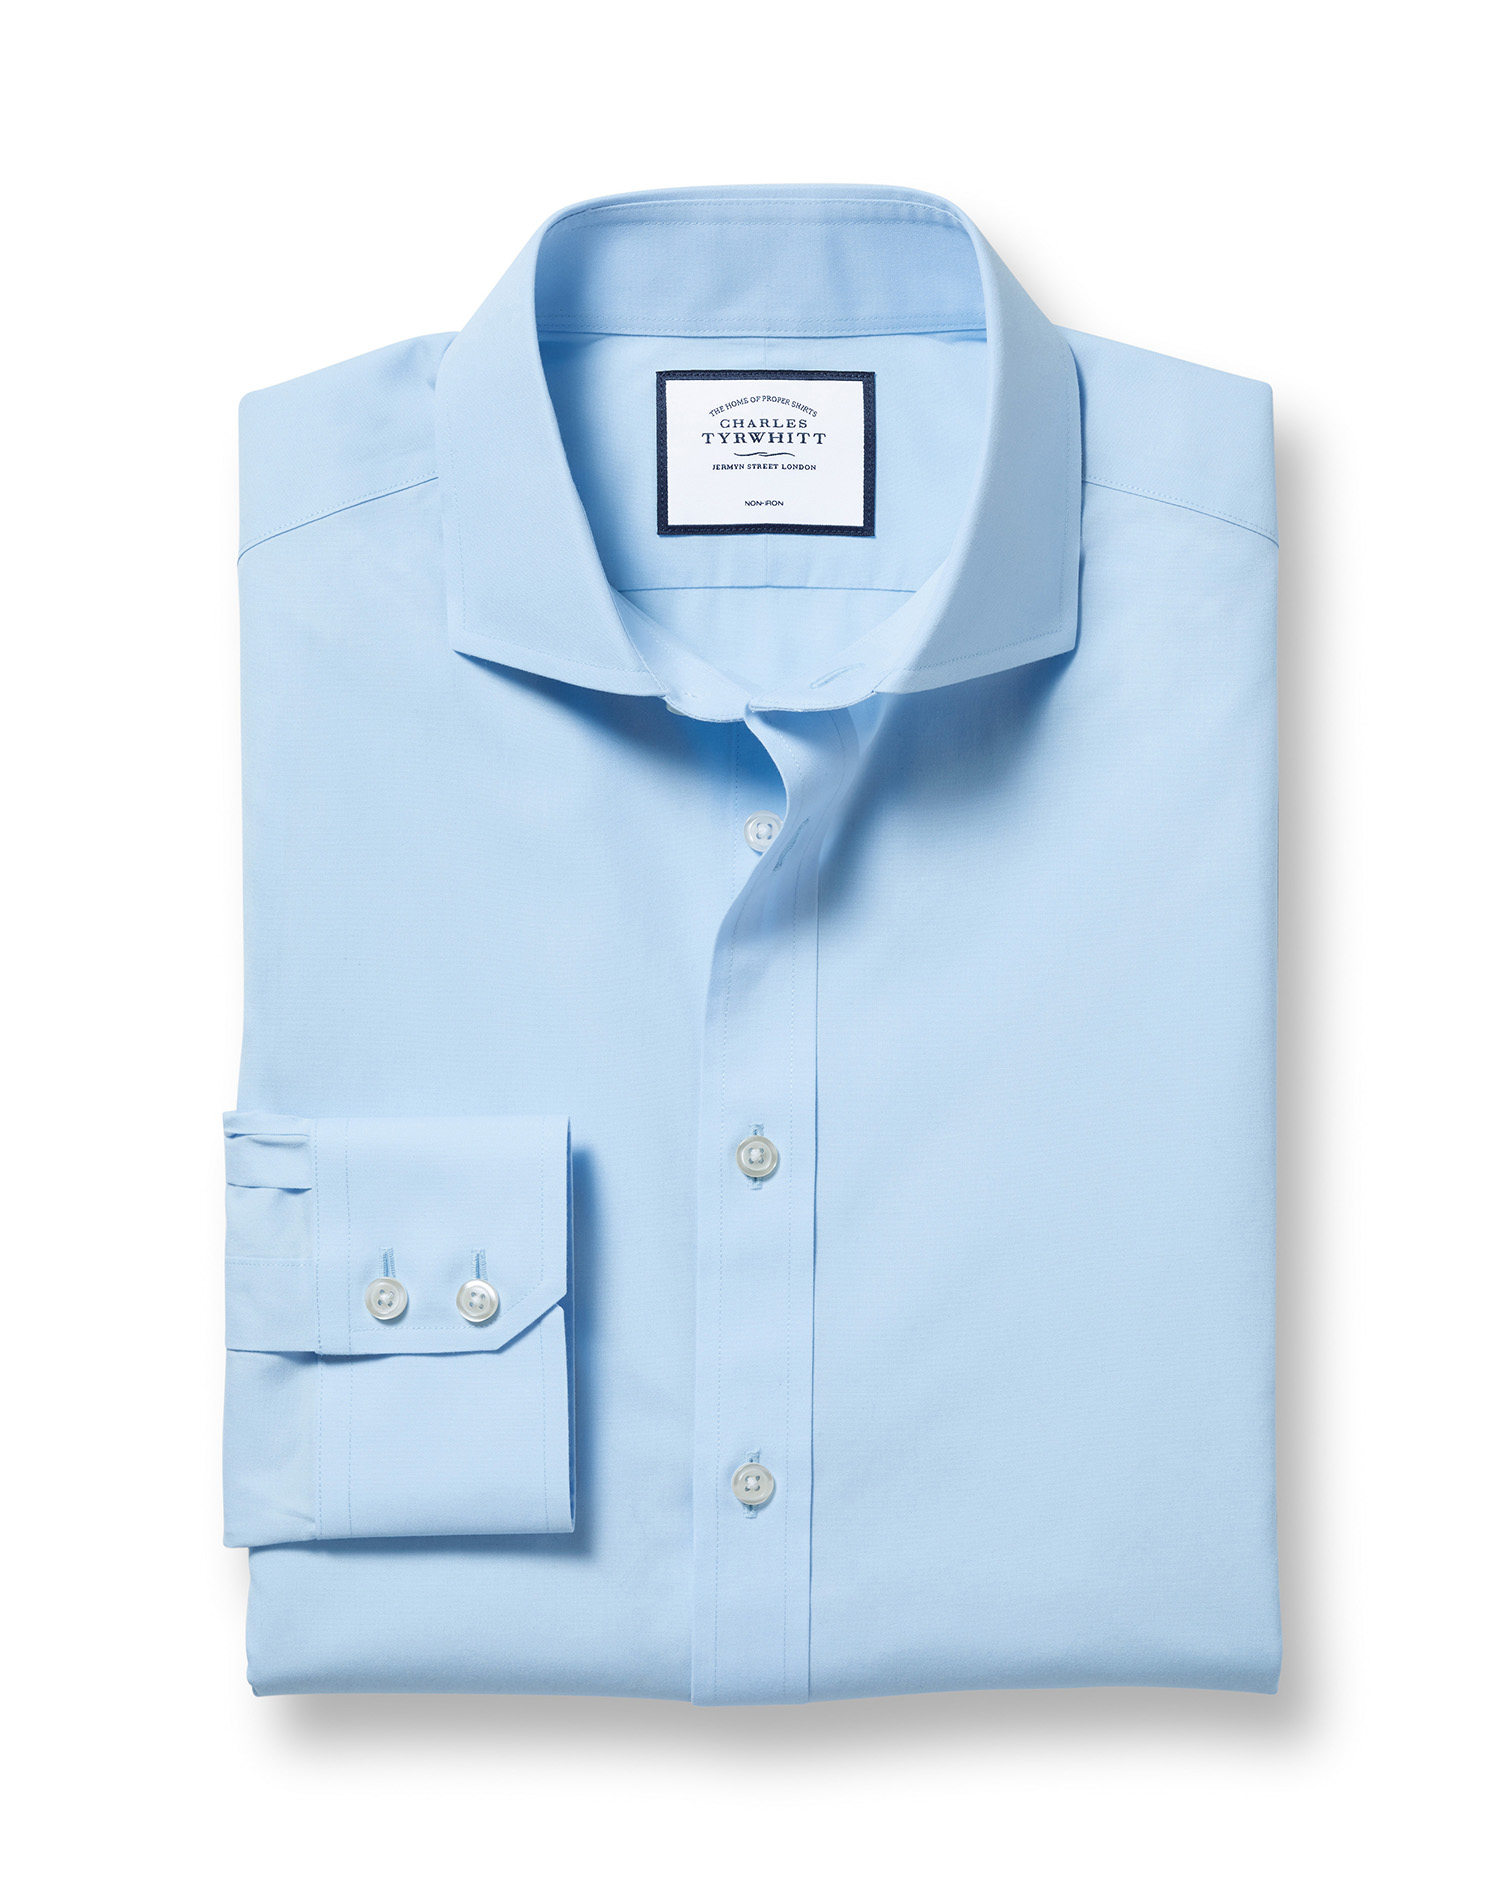 Extra Slim Fit Cutaway Non-Iron Poplin Sky Blue Cotton Formal Shirt Single Cuff Size 15.5/37 by Char